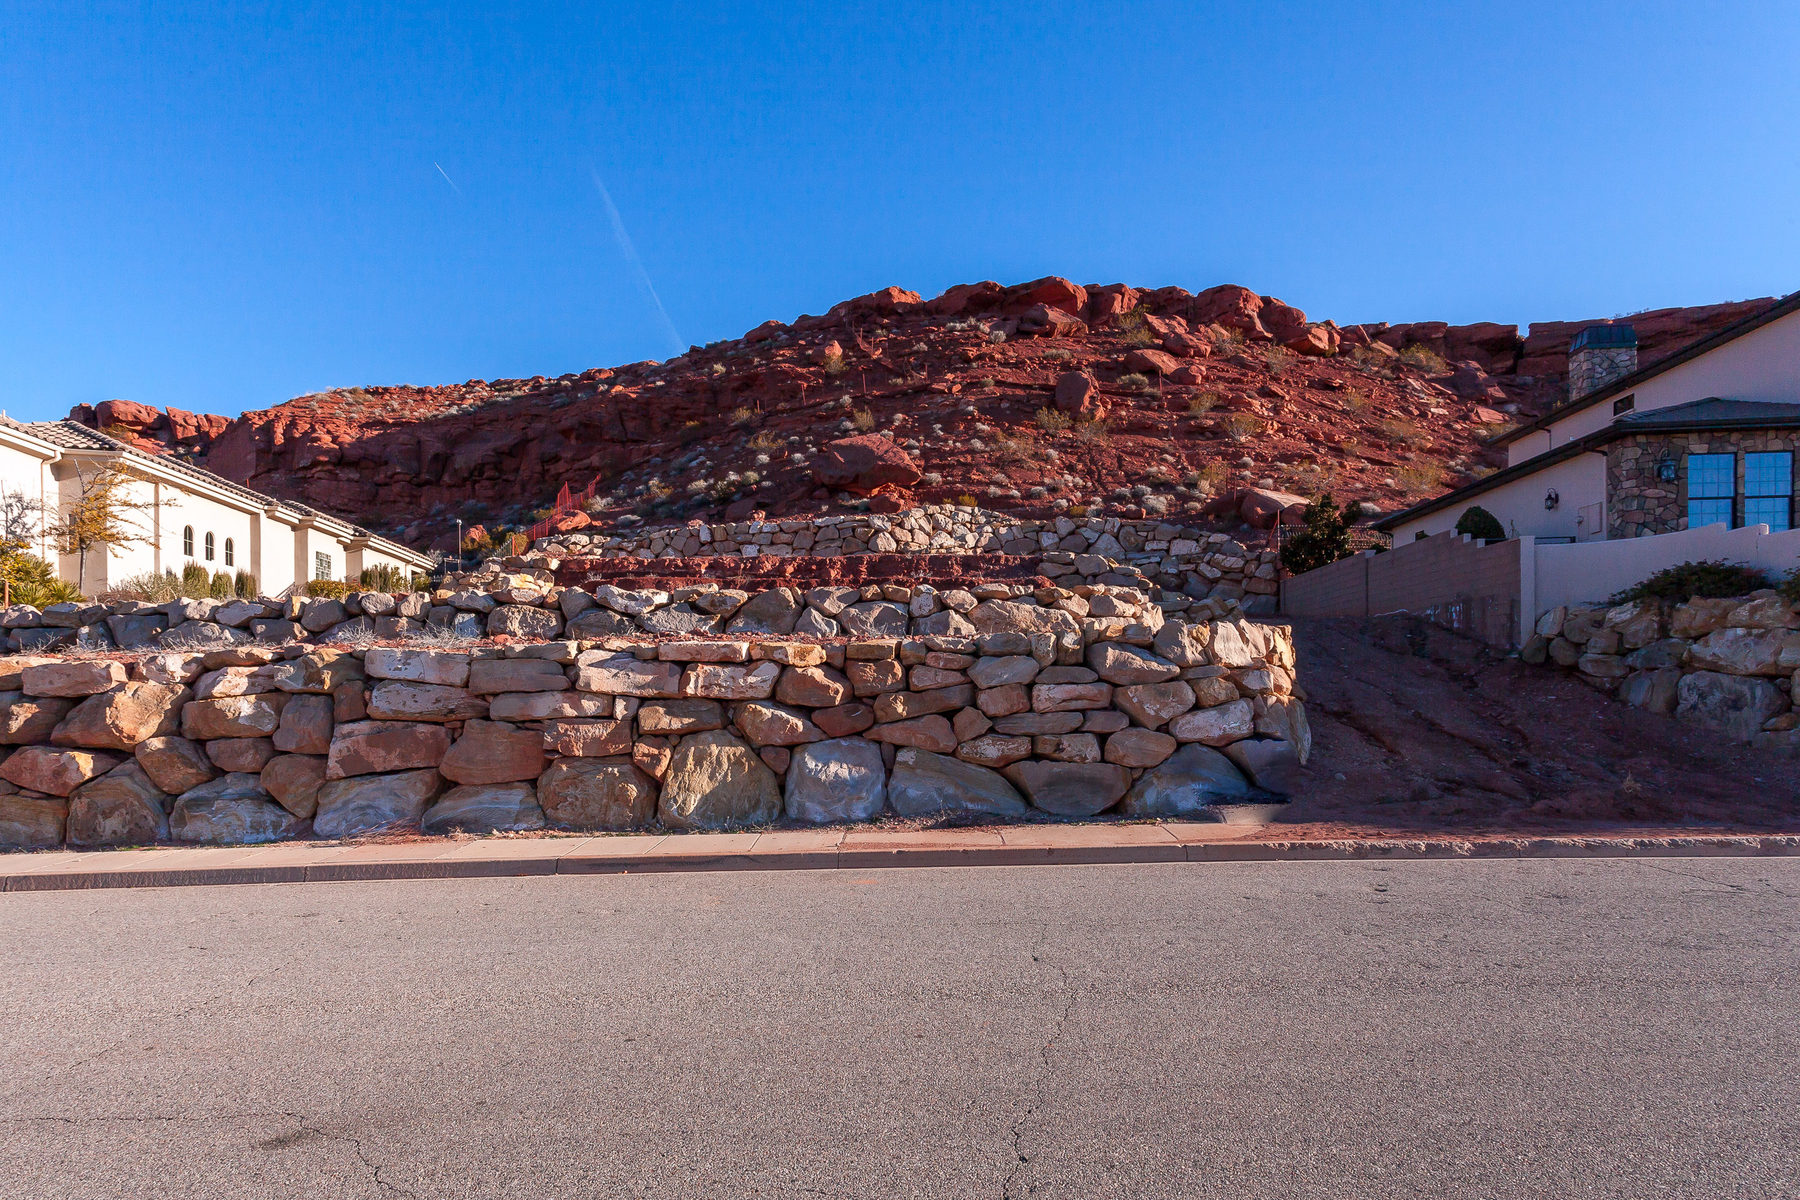 Terreno para Venda às Superb Castle Rock Building Site 2202 N Cascade Canyon St. George, Utah, 84770 Estados Unidos